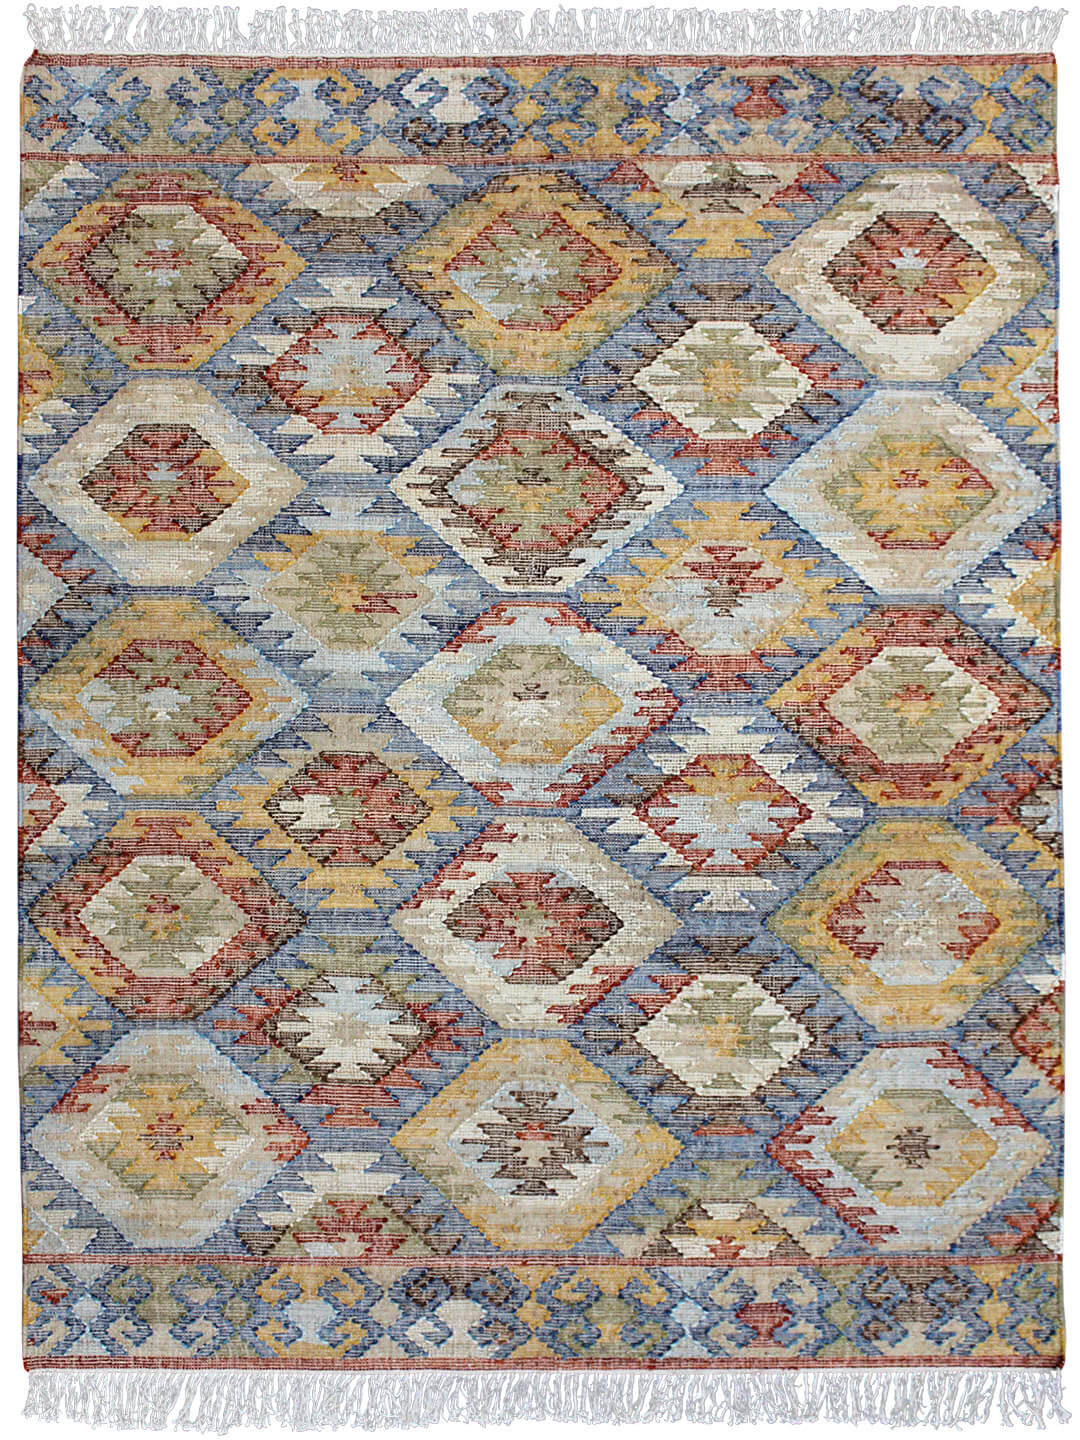 boho-nimbin-detail-floor-rugs-perth-kilim-colourful-Stans